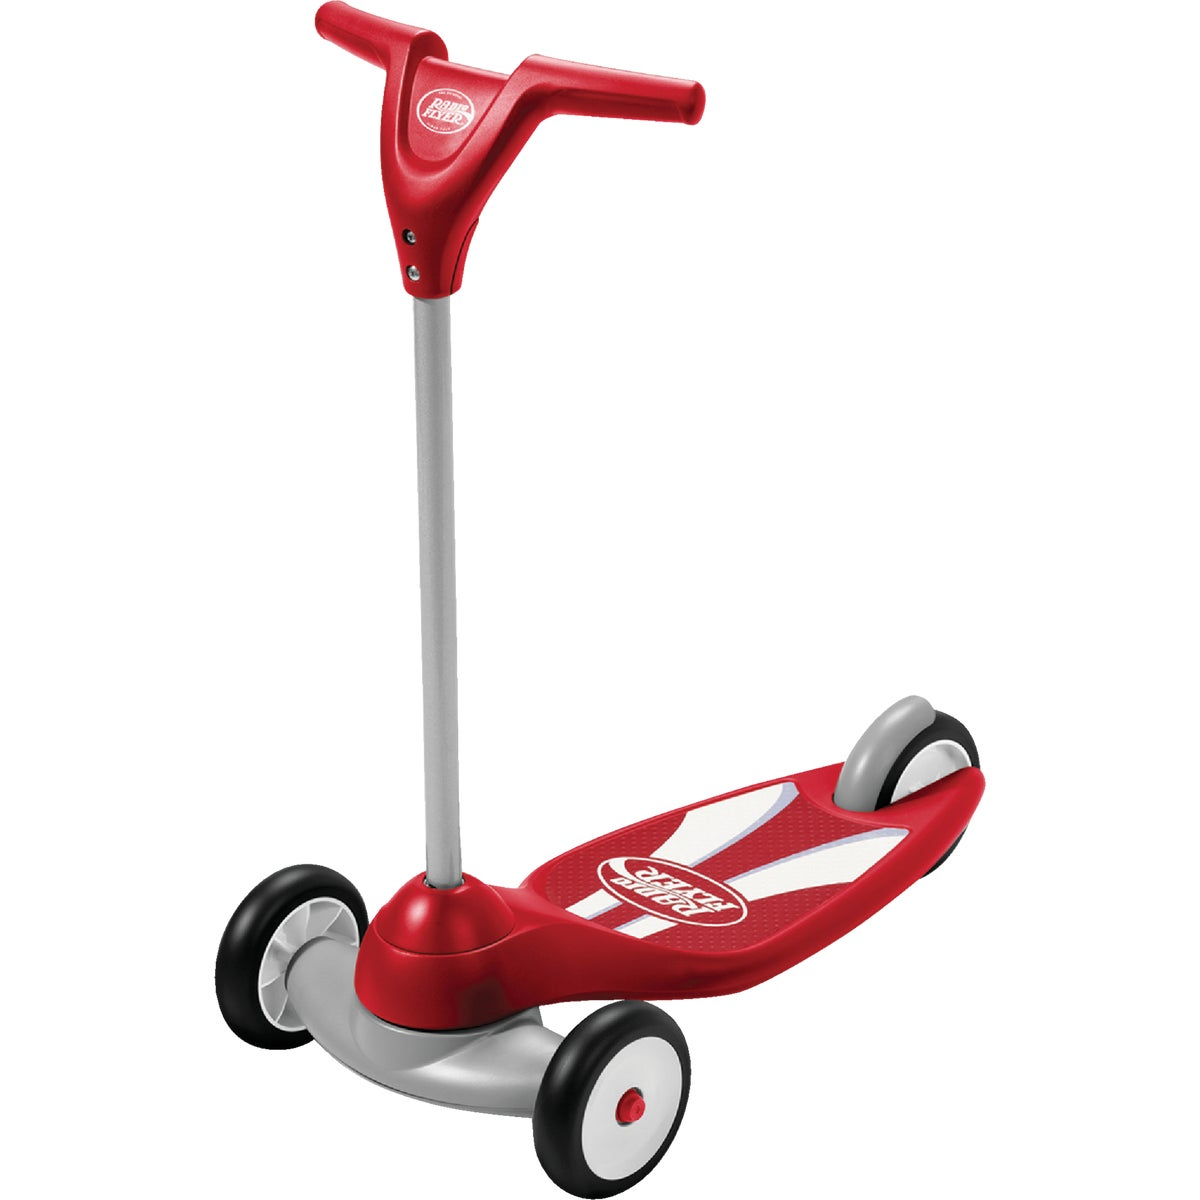 THREE WHEEL KIDS SCOOTER - 535 by Radio Flyer Shanghai